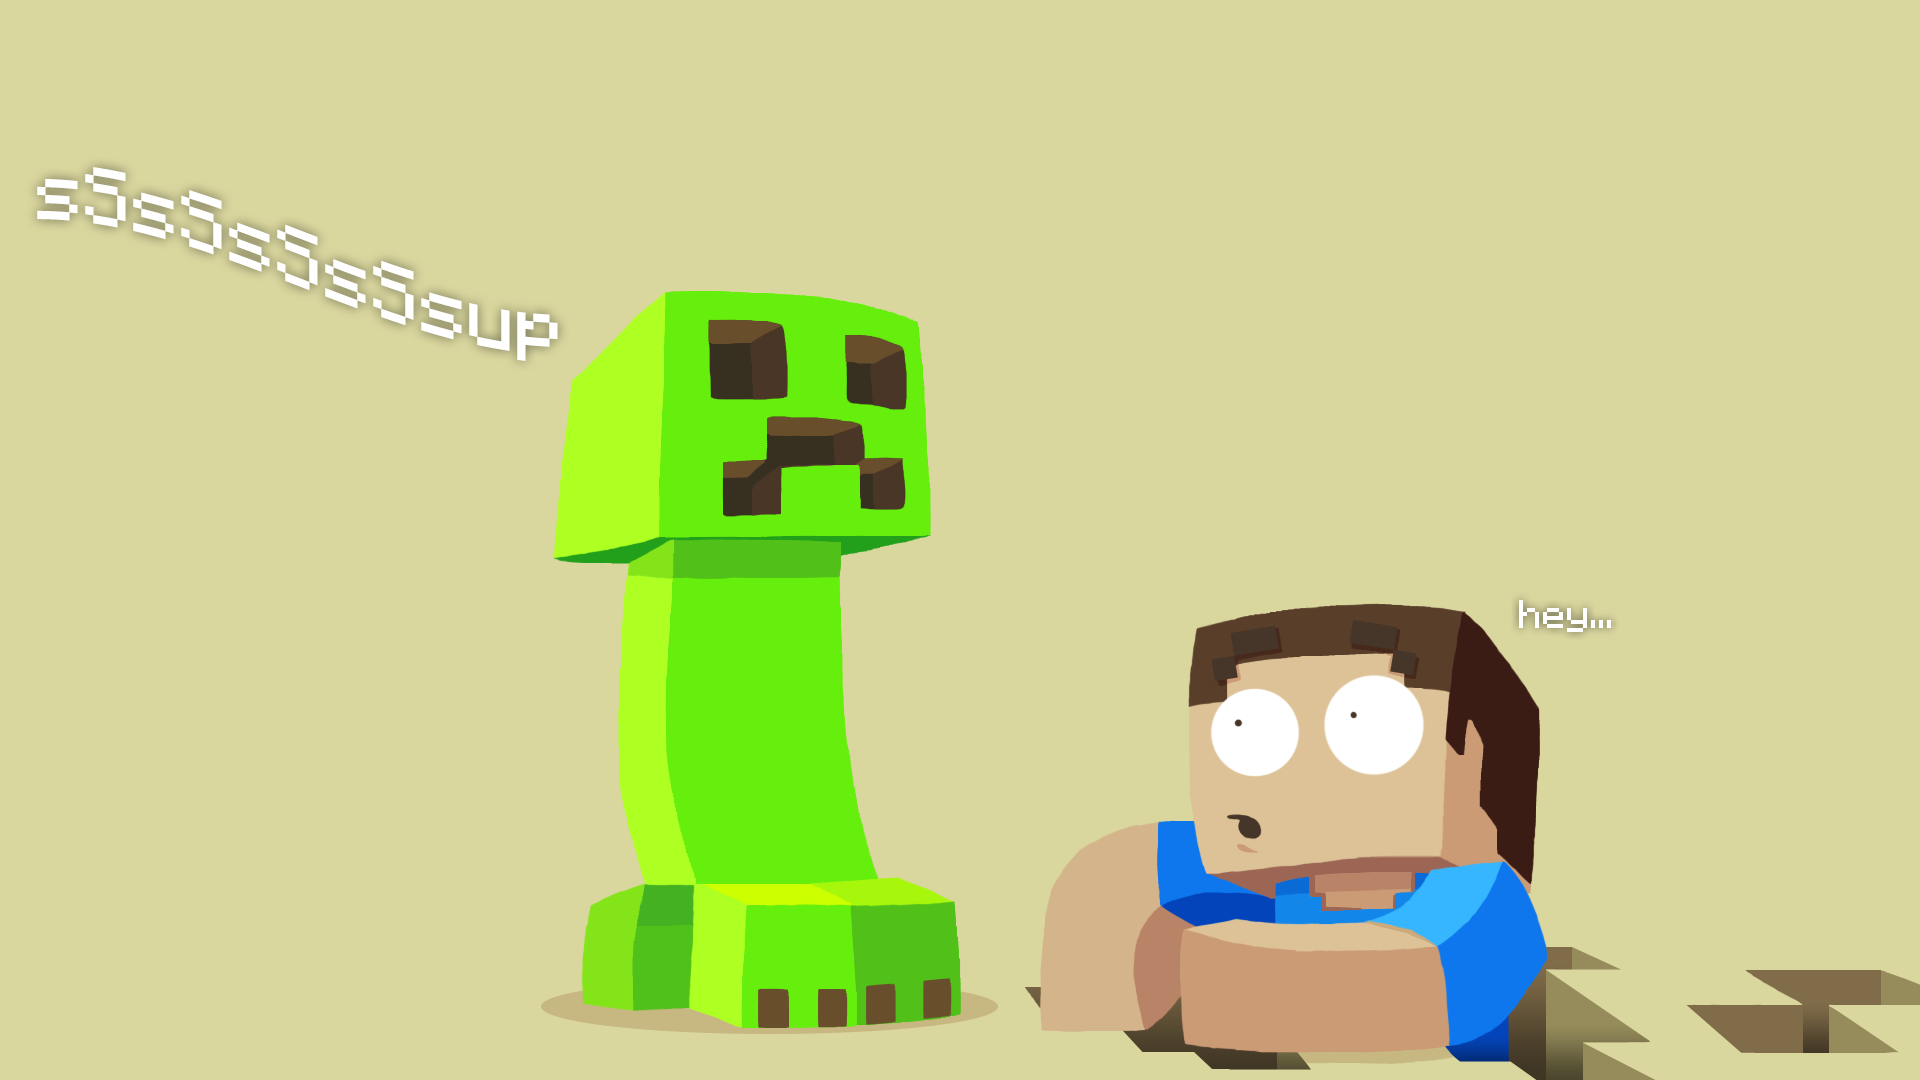 Download Wallpaper Minecraft Soccer - Desktop-Minecraft-Pictures  Perfect Image Reference_452125.png